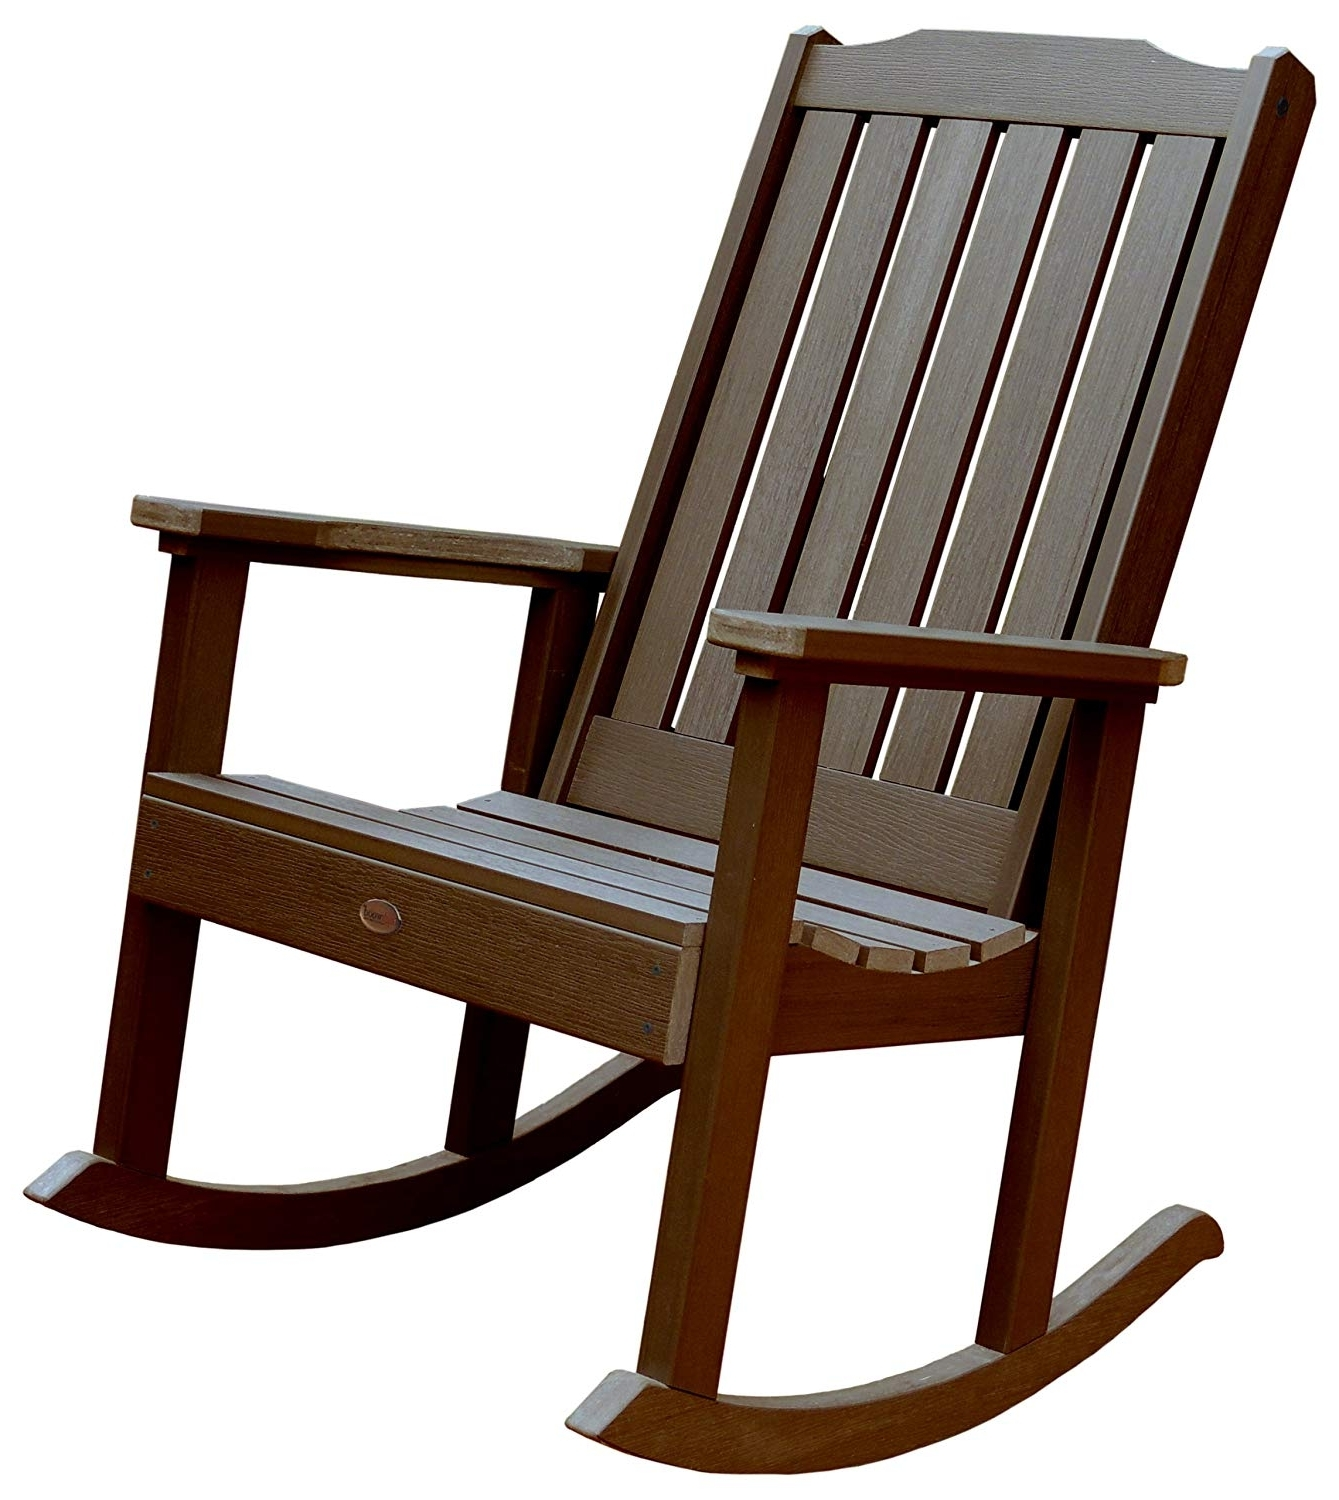 Patio Rocking Chairs Pertaining To Trendy Amazon : Highwood Lehigh Rocking Chair, Weathered Acorn : Patio (View 11 of 15)